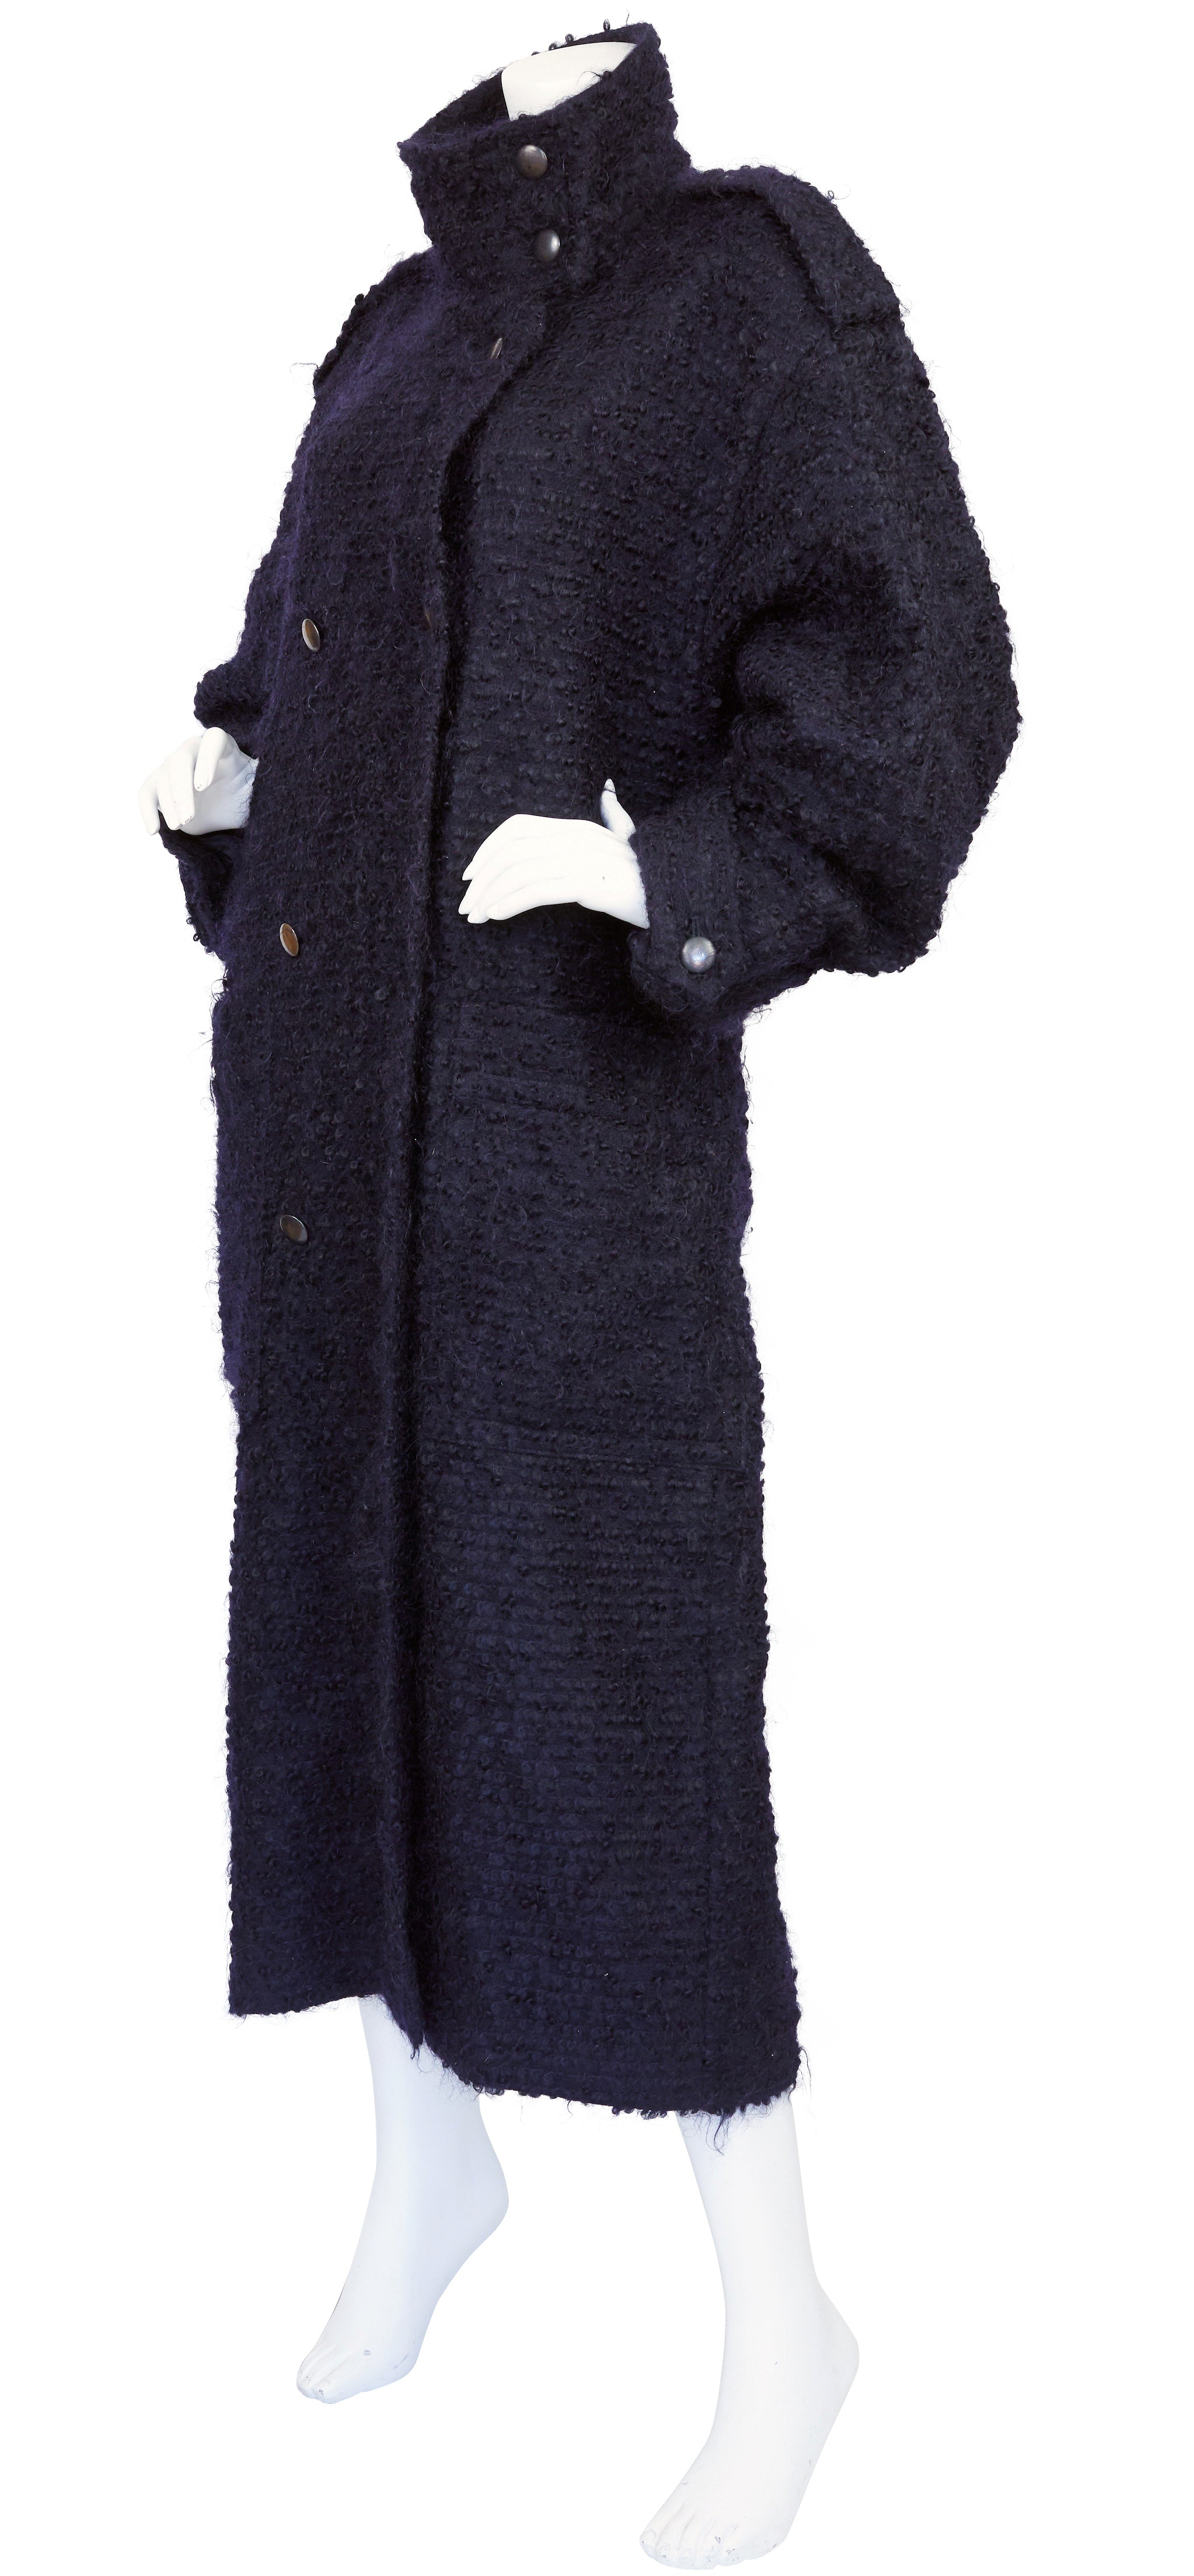 1980s Navy Fuzzy Wool Double-Breasted Coat